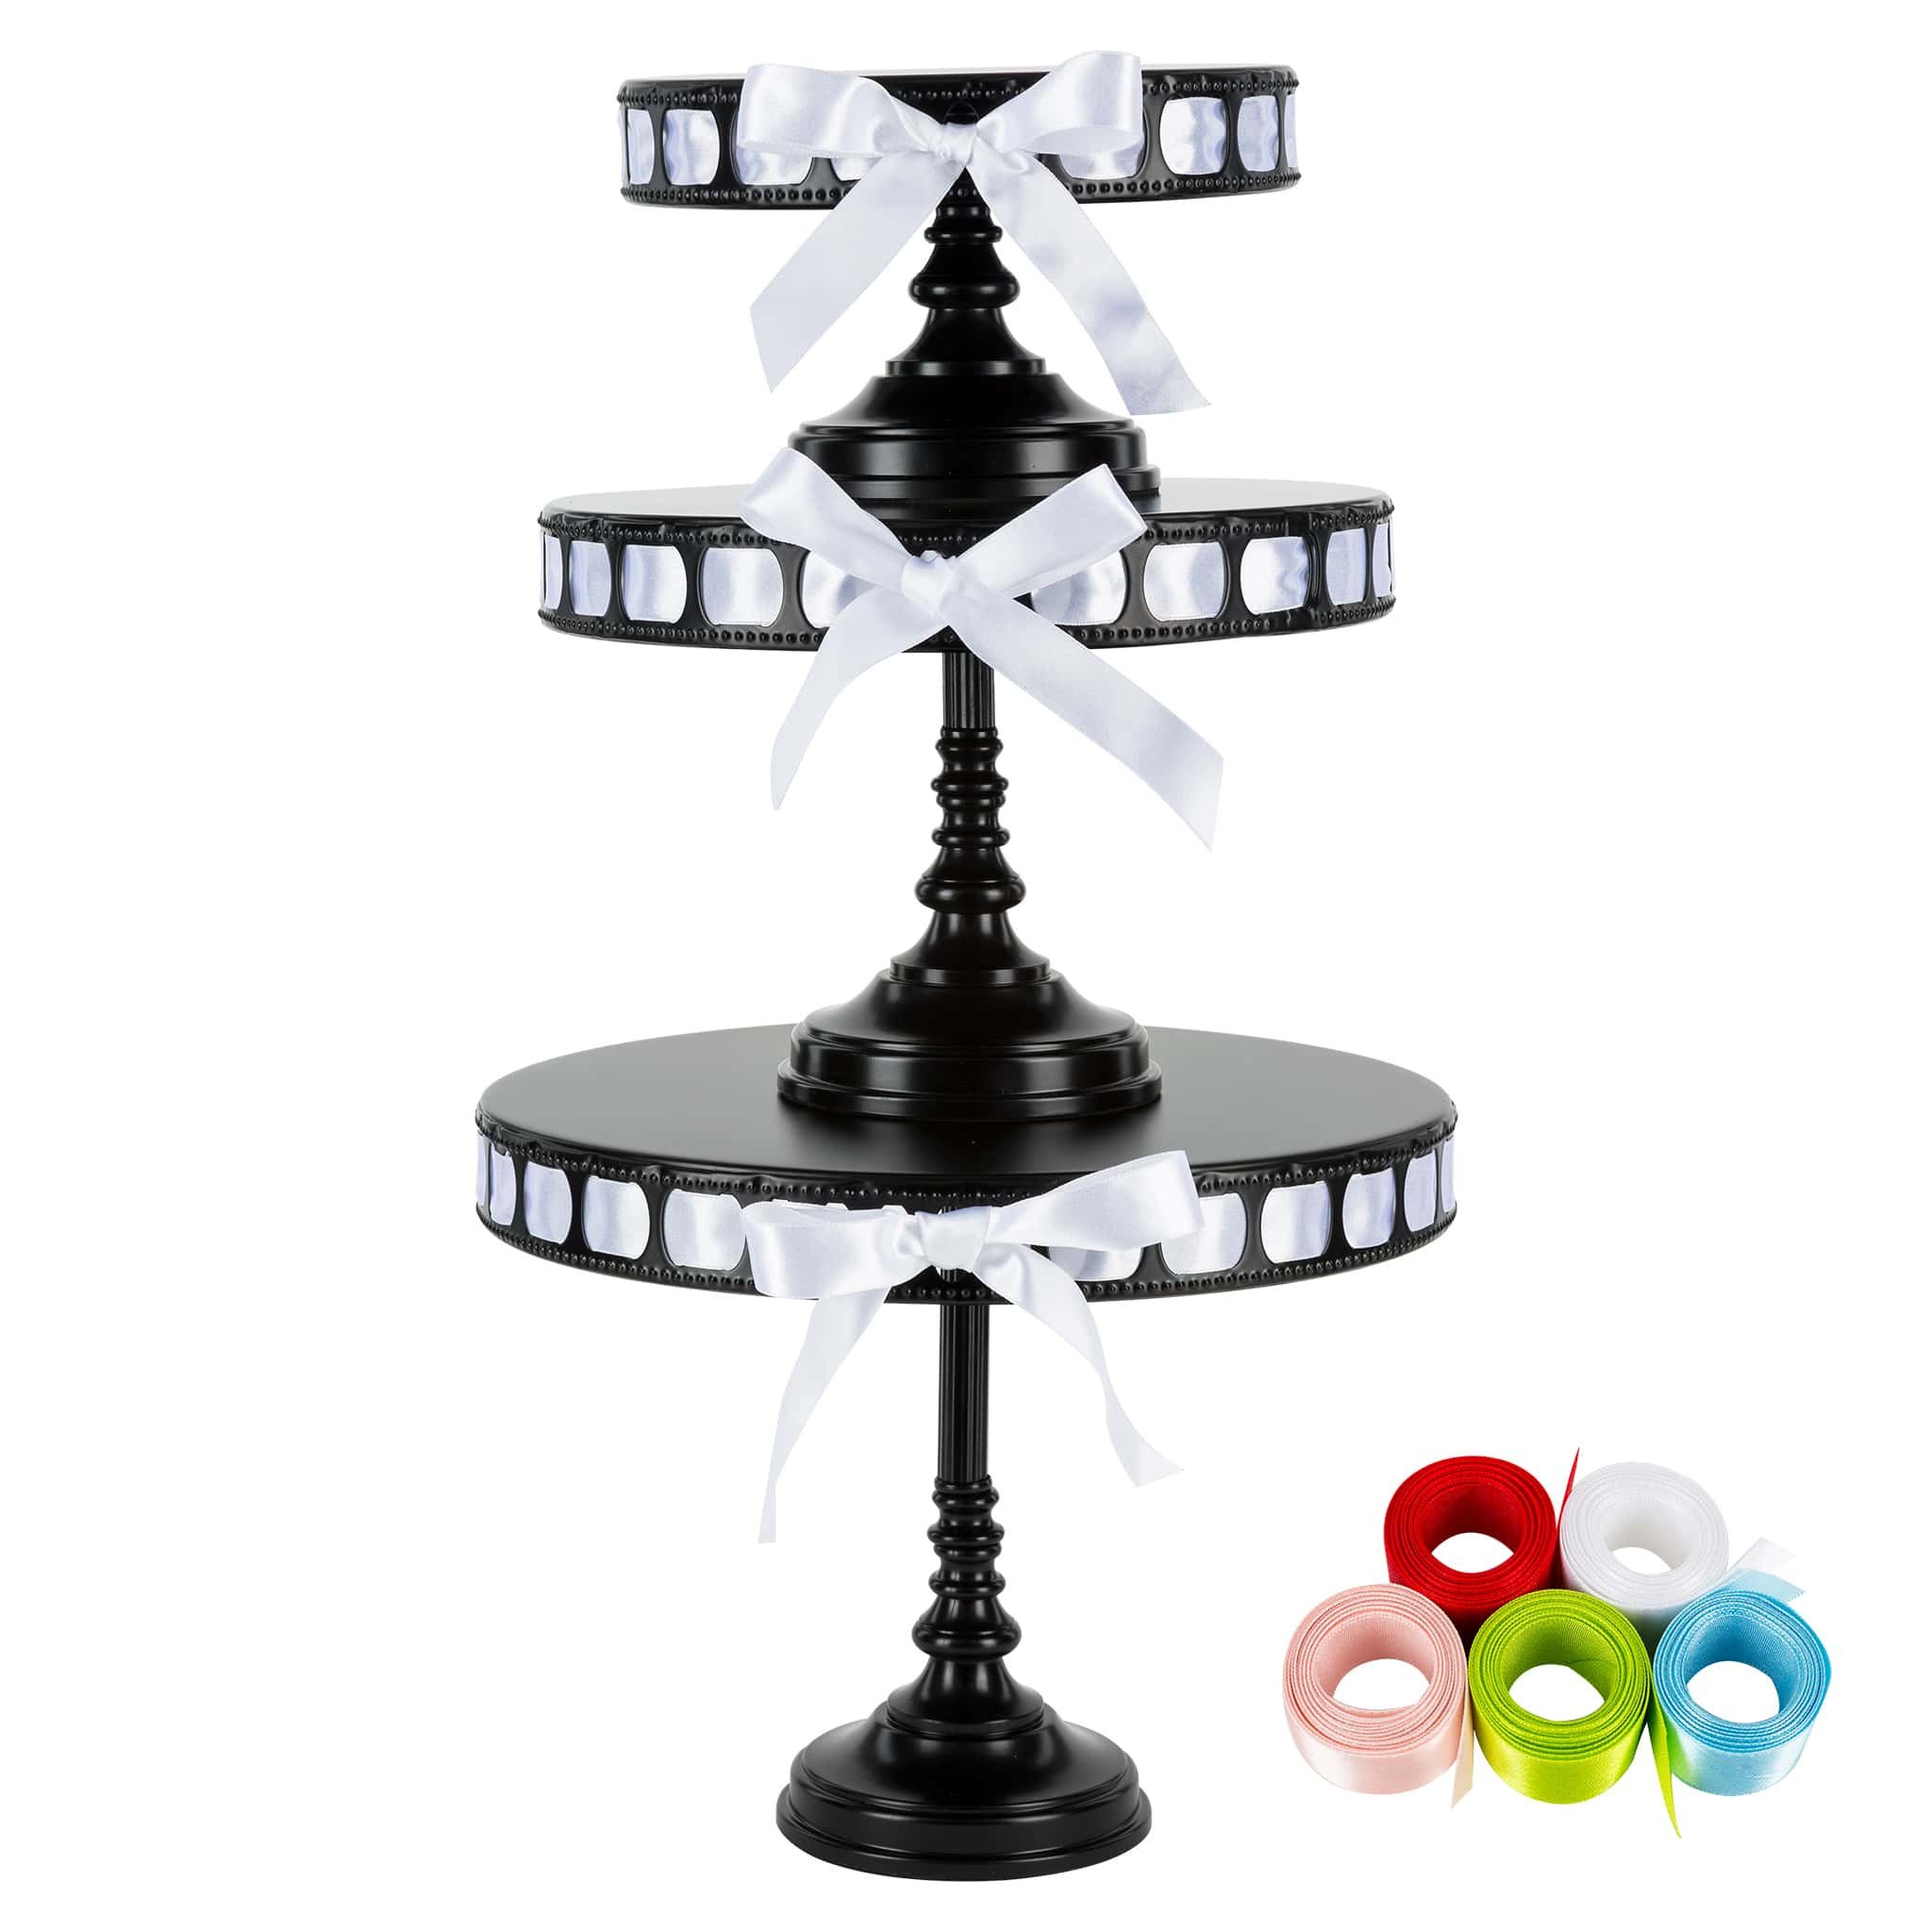 Amalfi Decor 3-Piece Tall Metal Ribbon Cake Stand Set (Black) | Stainless Steel Frame